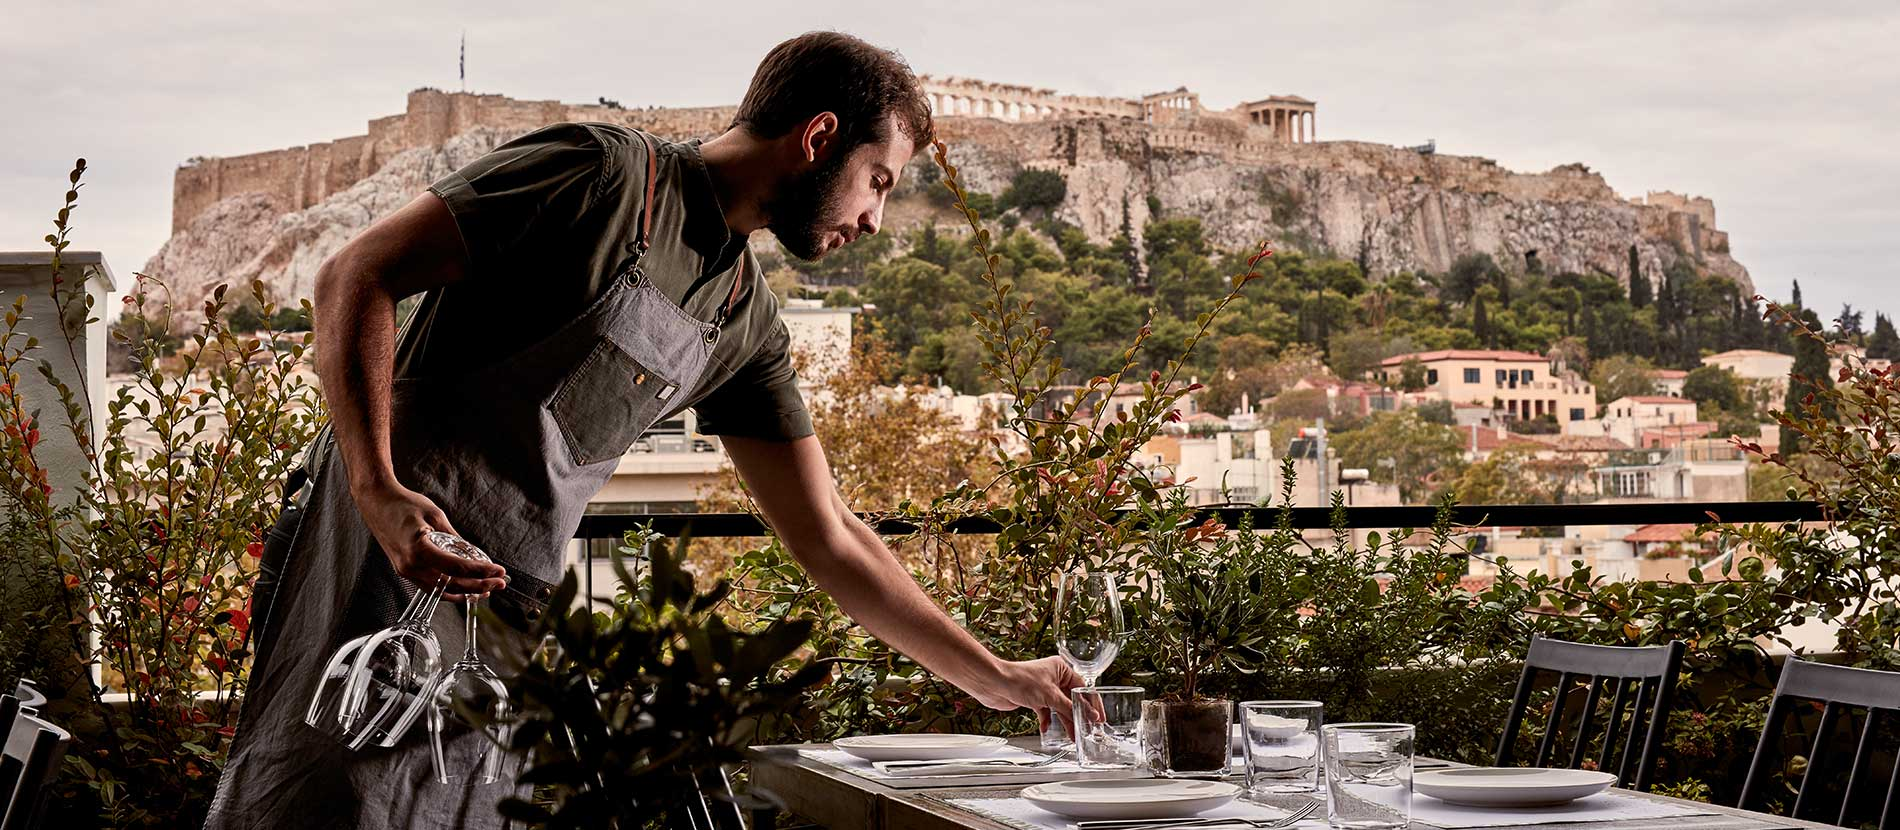 The zillers roof garden athens